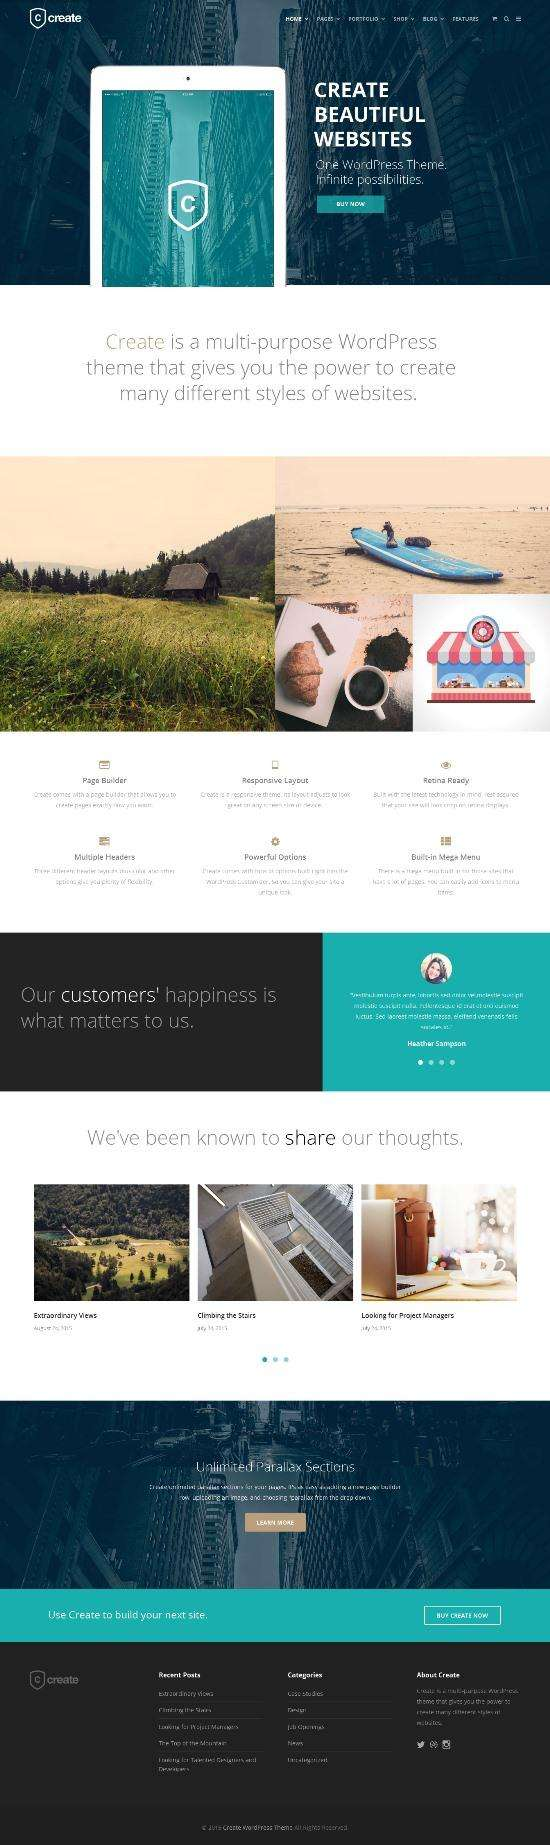 create themetrust theme 01 - ThemeTrust Create WordPress Theme